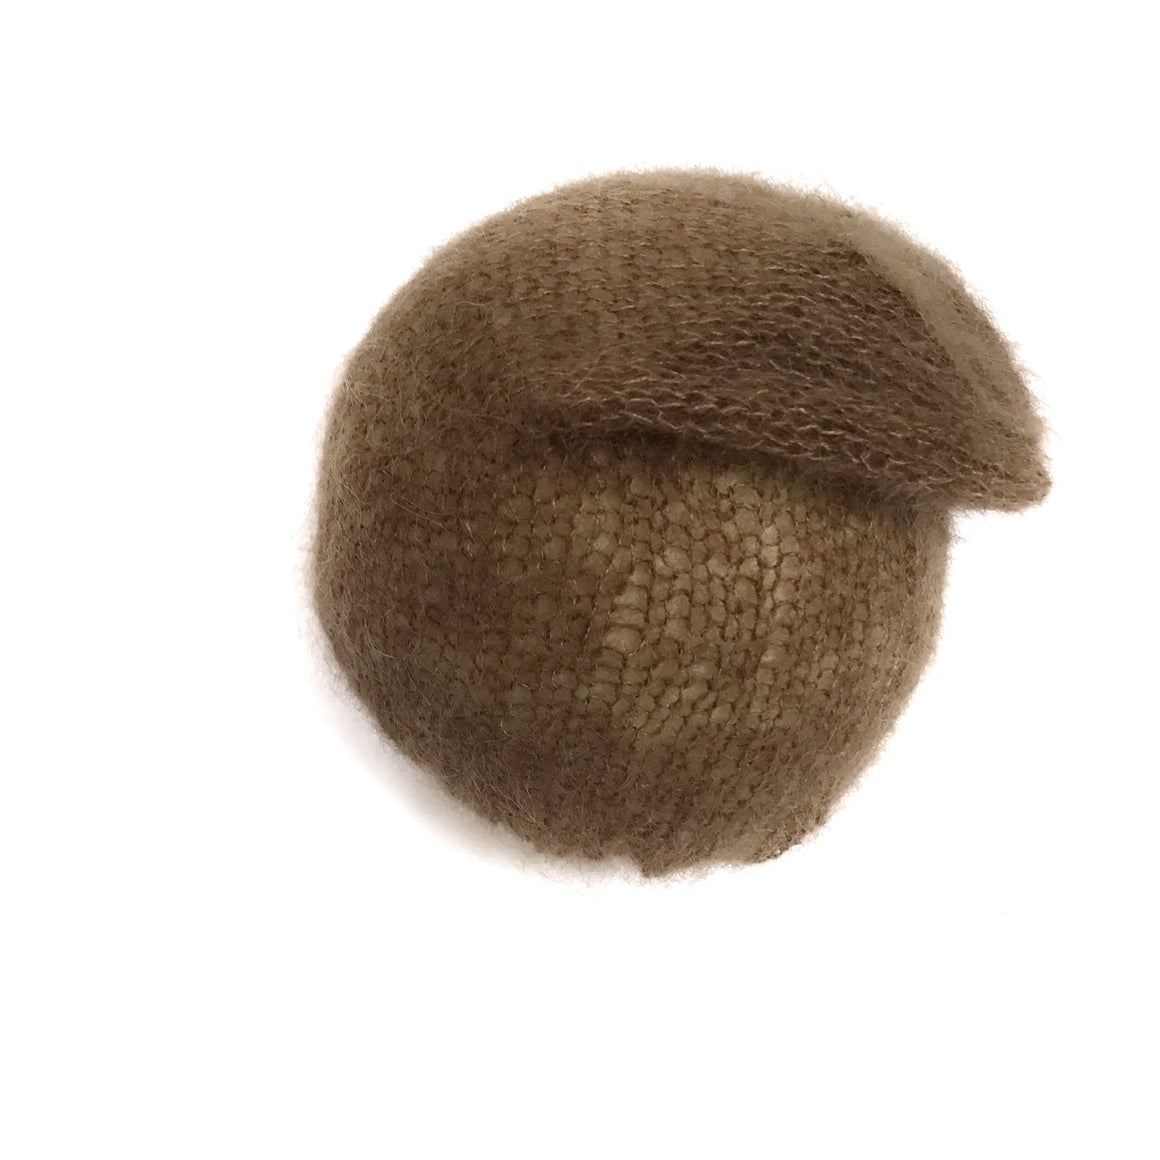 Brown Mohair Slouchy Hat - Newborn - Knit Photography Props by Double the Stitches